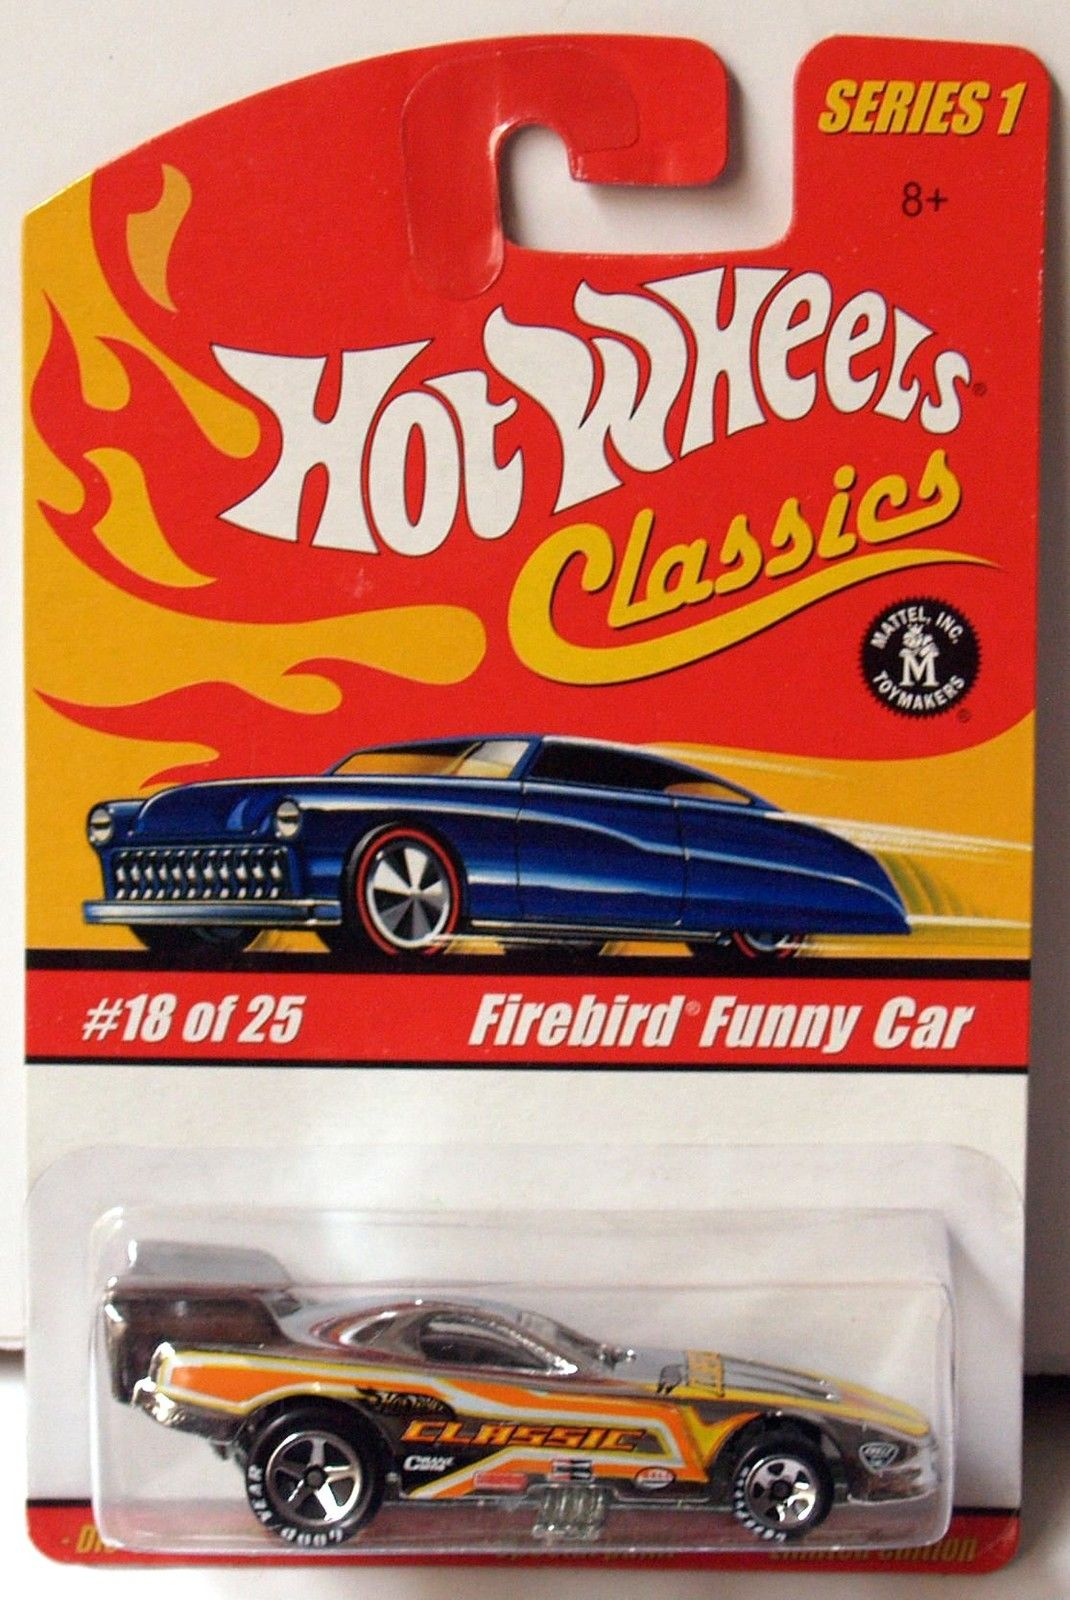 HOT WHEELS CLASSICS SERIES 1 #18/25 FIREBIRD FUNNY CAR CHROME